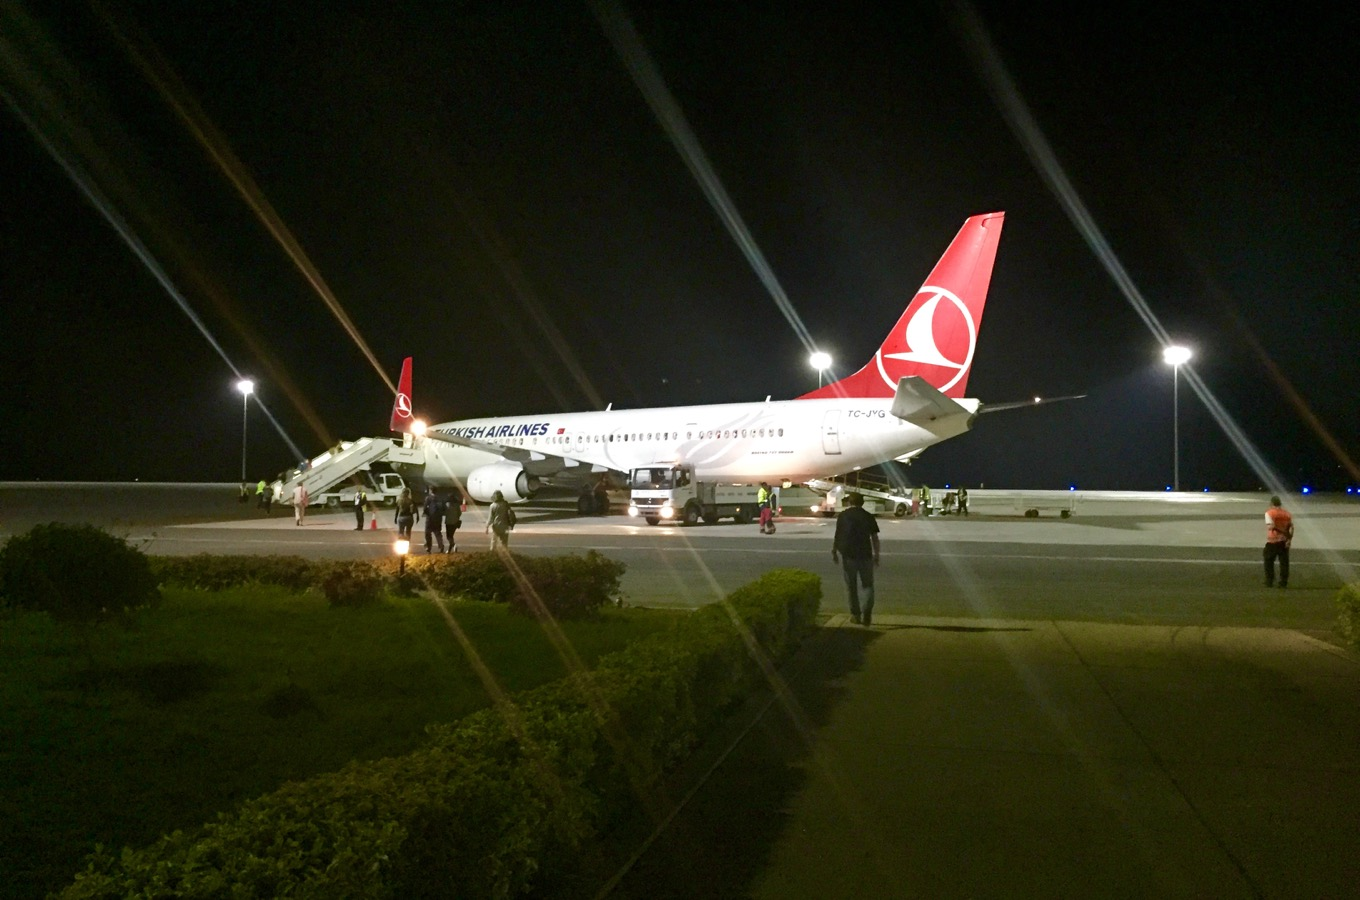 Départ de l'aéroport international du Kilimandjaro avec Turkish Airlines